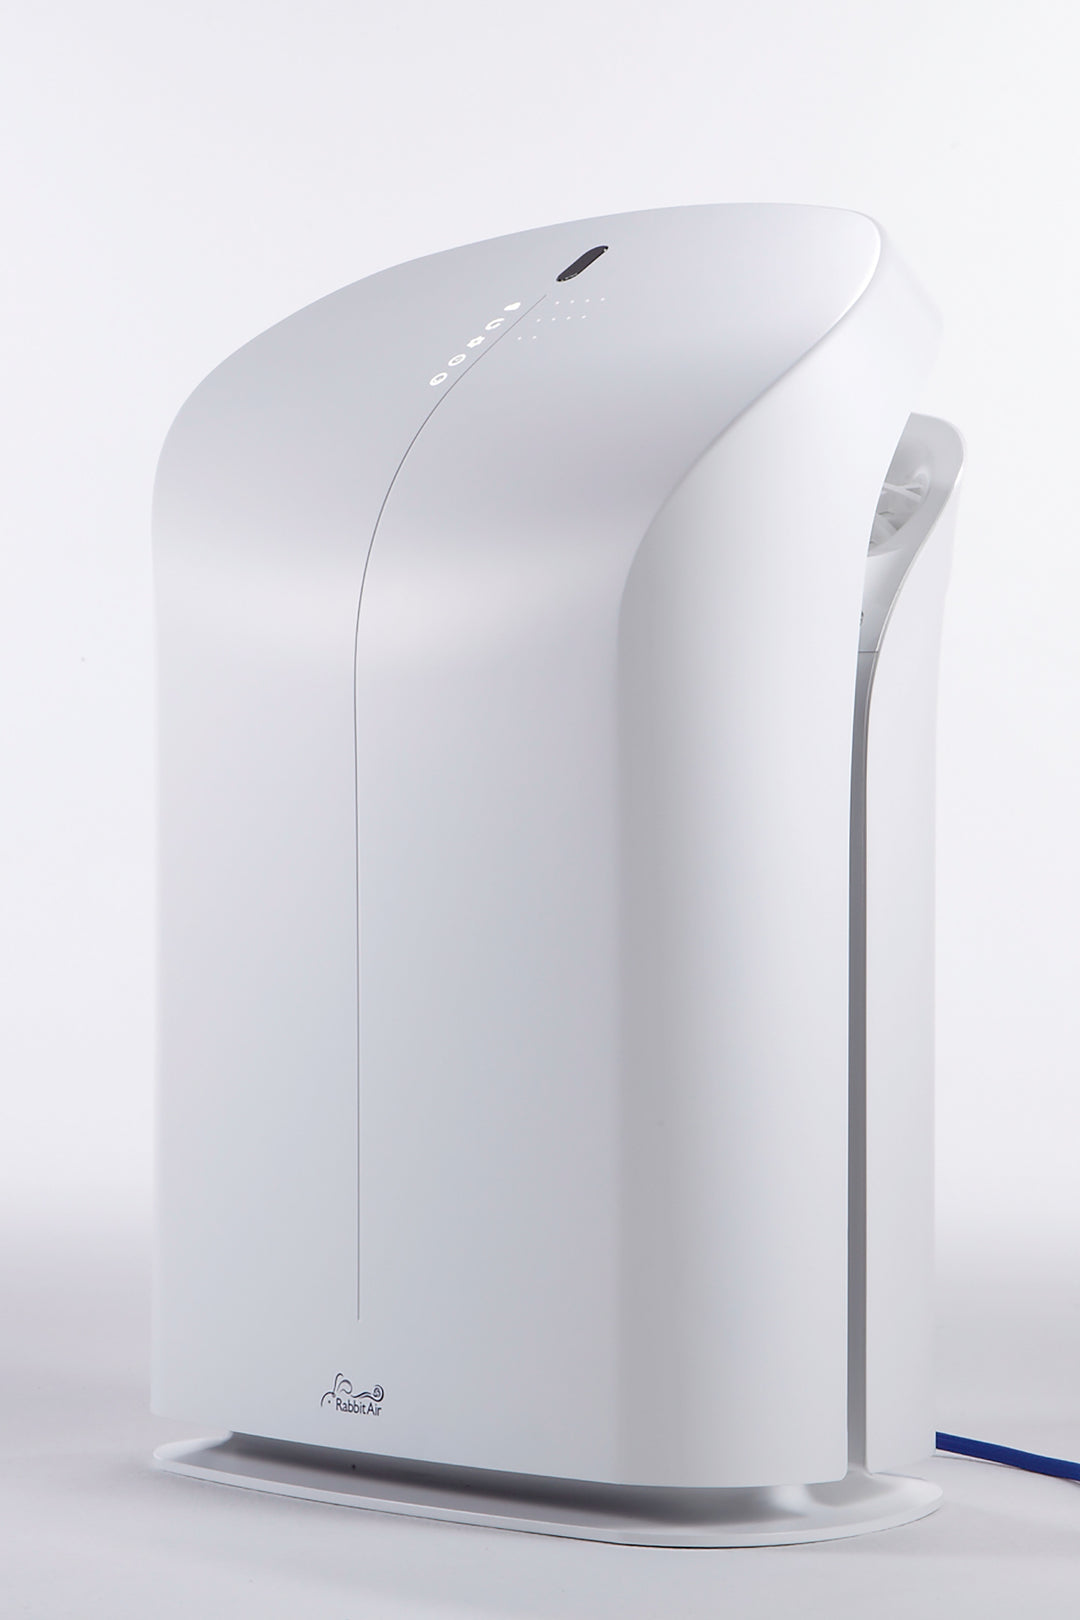 BioGS 2.0 air purifier front side view